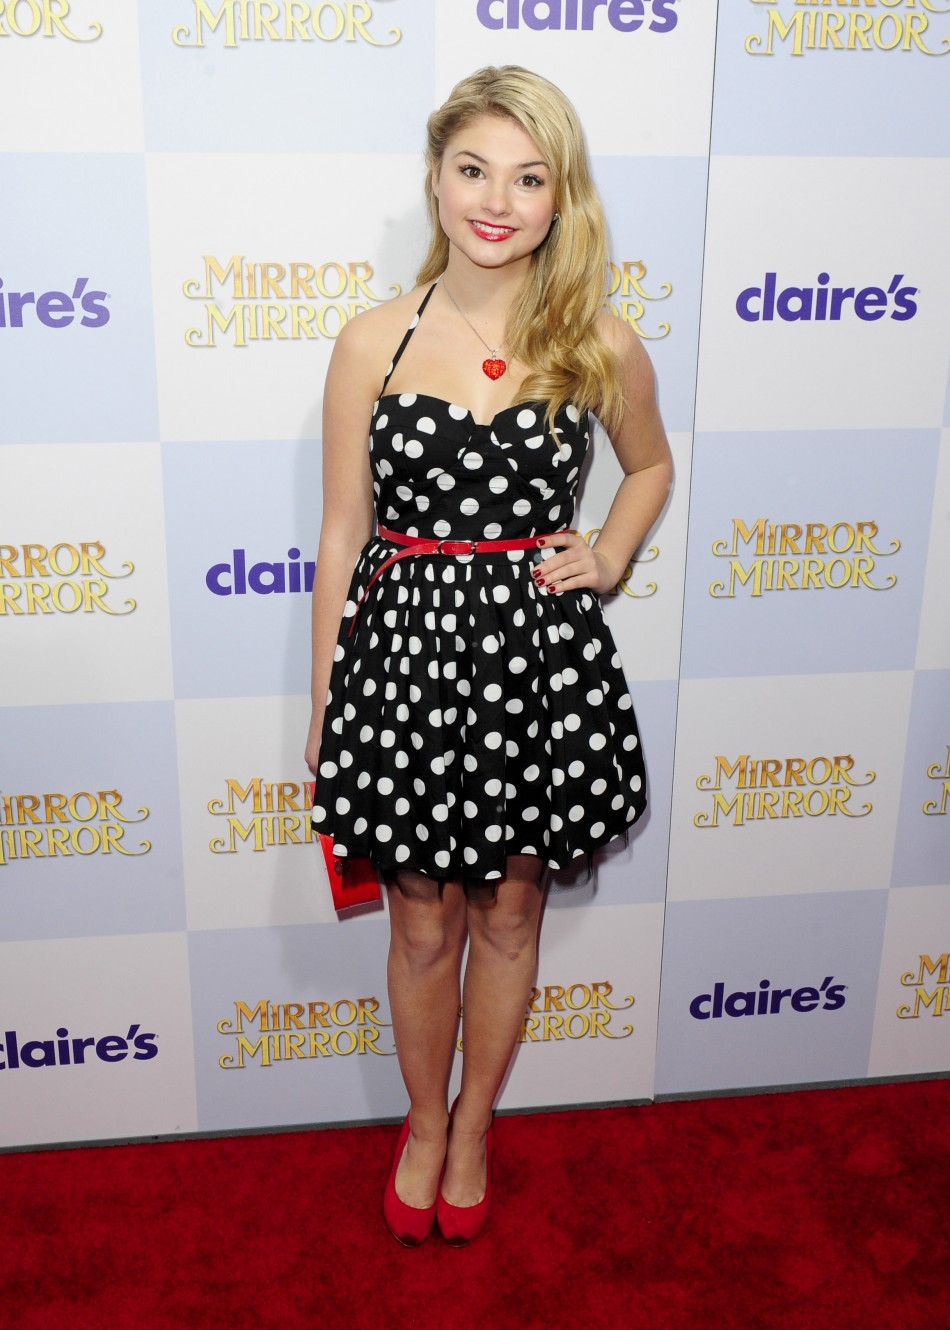 Actress Stefanie Scott arrives at the Hollywood world premiere of quotMirror Mirrorquot in Los Angeles, California